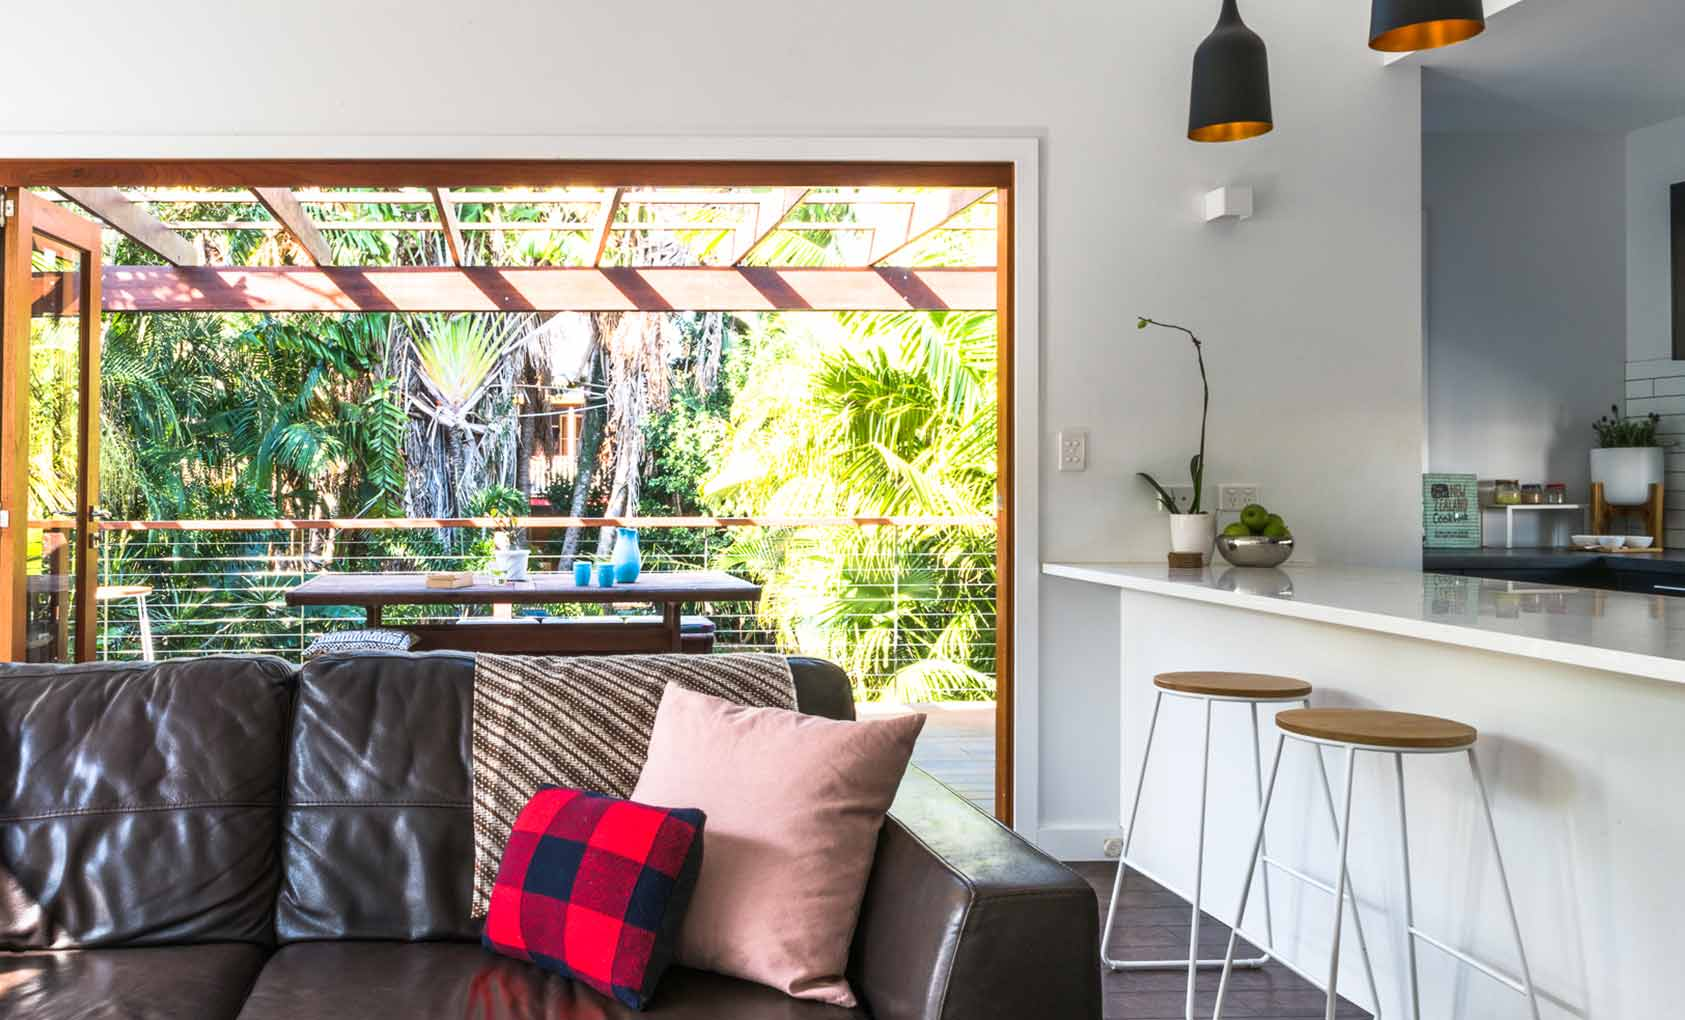 In Australia, a Modern Cottage Nestled in the Trees, Design*Sponge